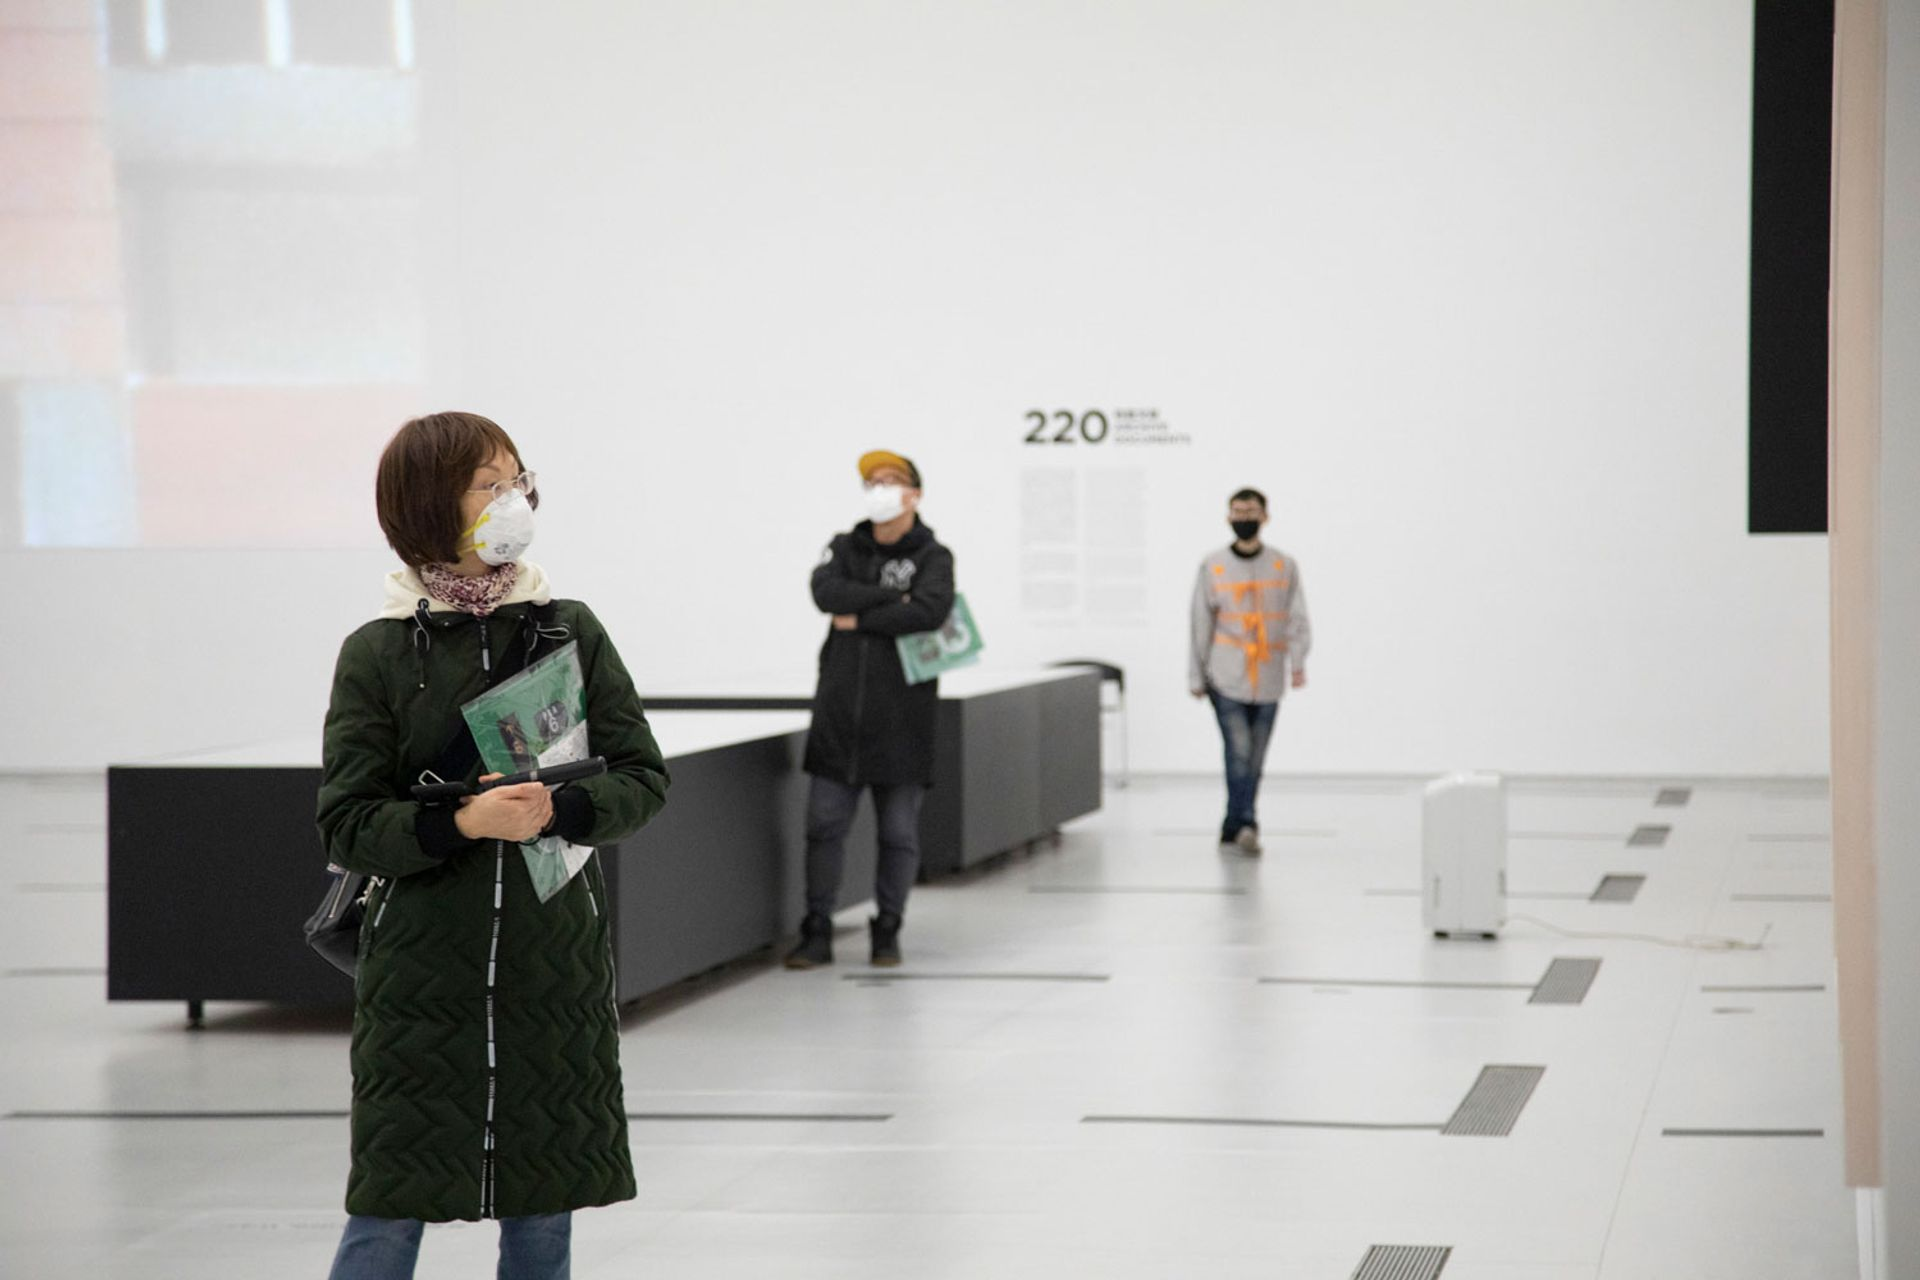 Shanghai's Power Station of Art reopened to the public today. Visitors must have their temperature checked and keep 1.5-metre distance © Power Station of Art